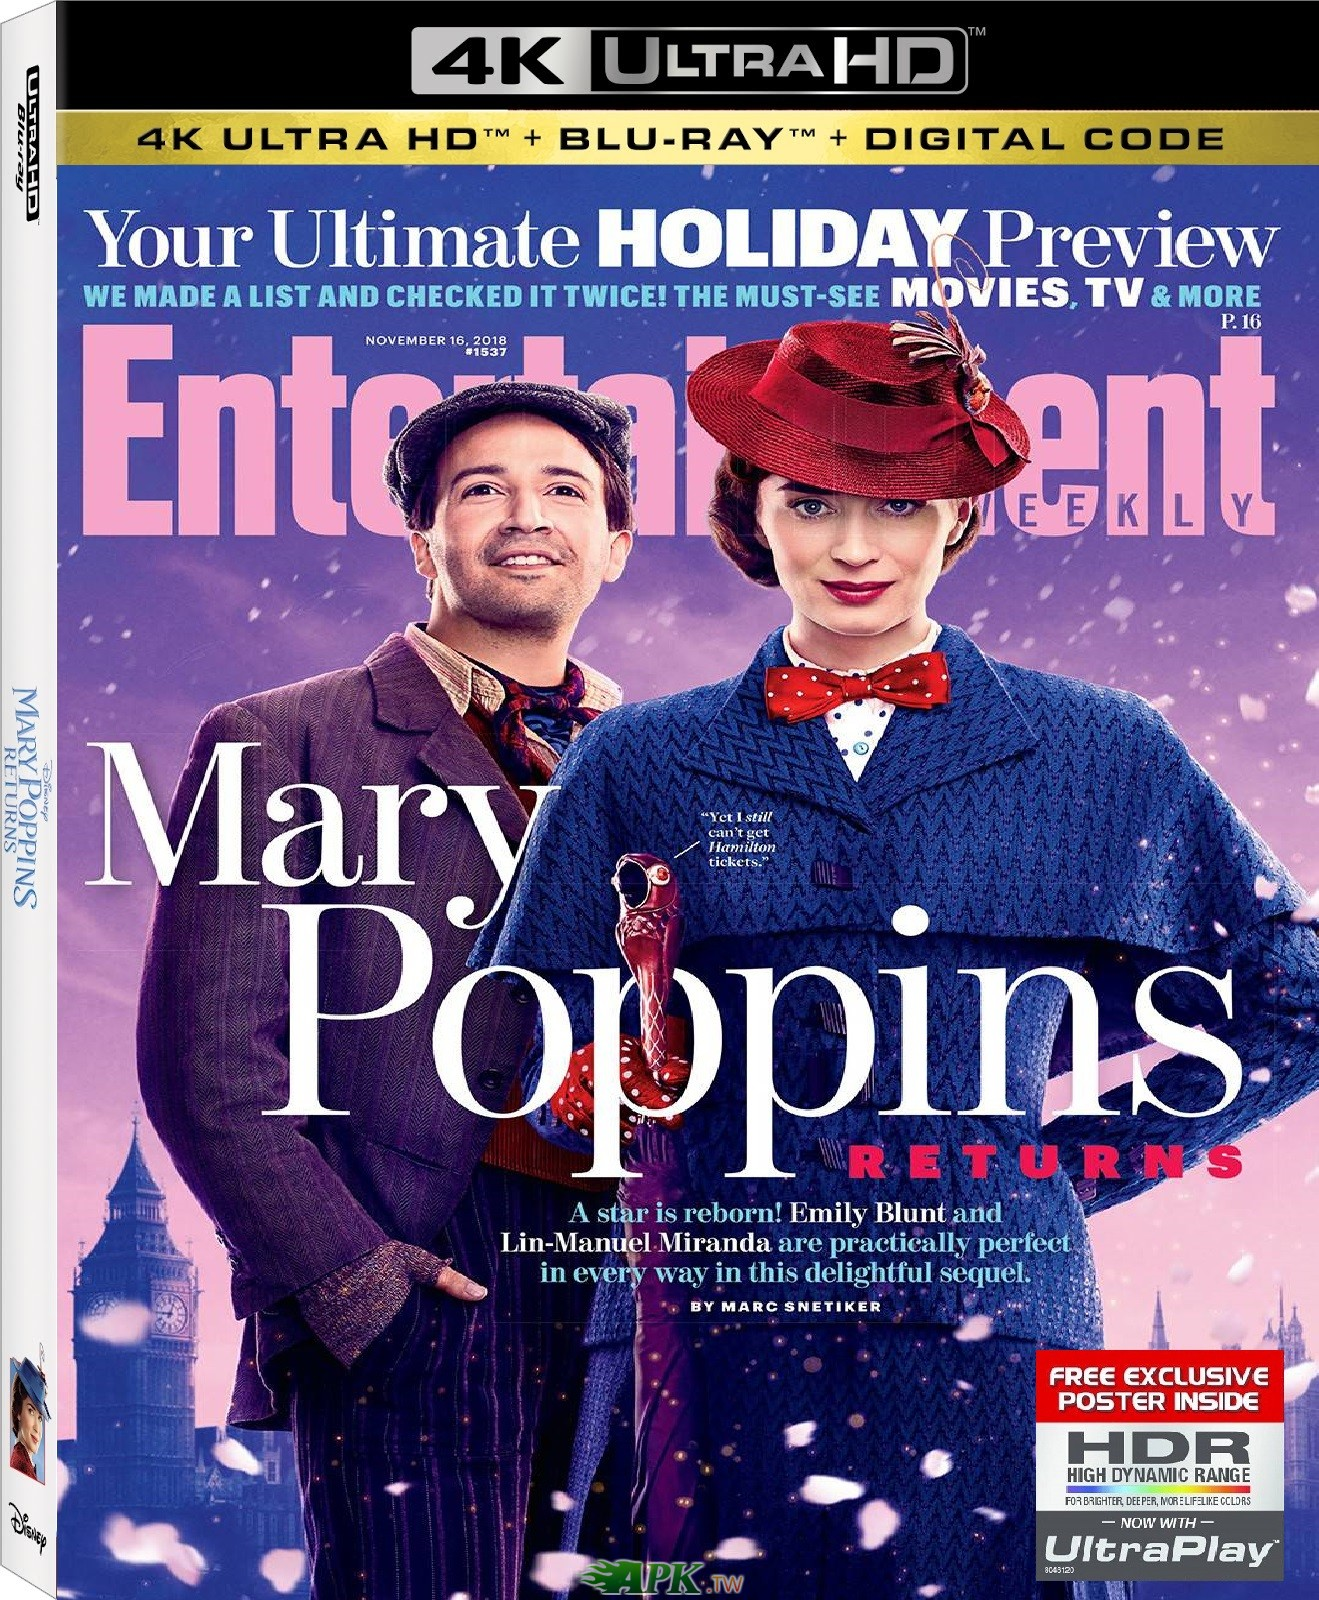 mary-poppins-returns-coming-to-home-release-this-march.jpeg